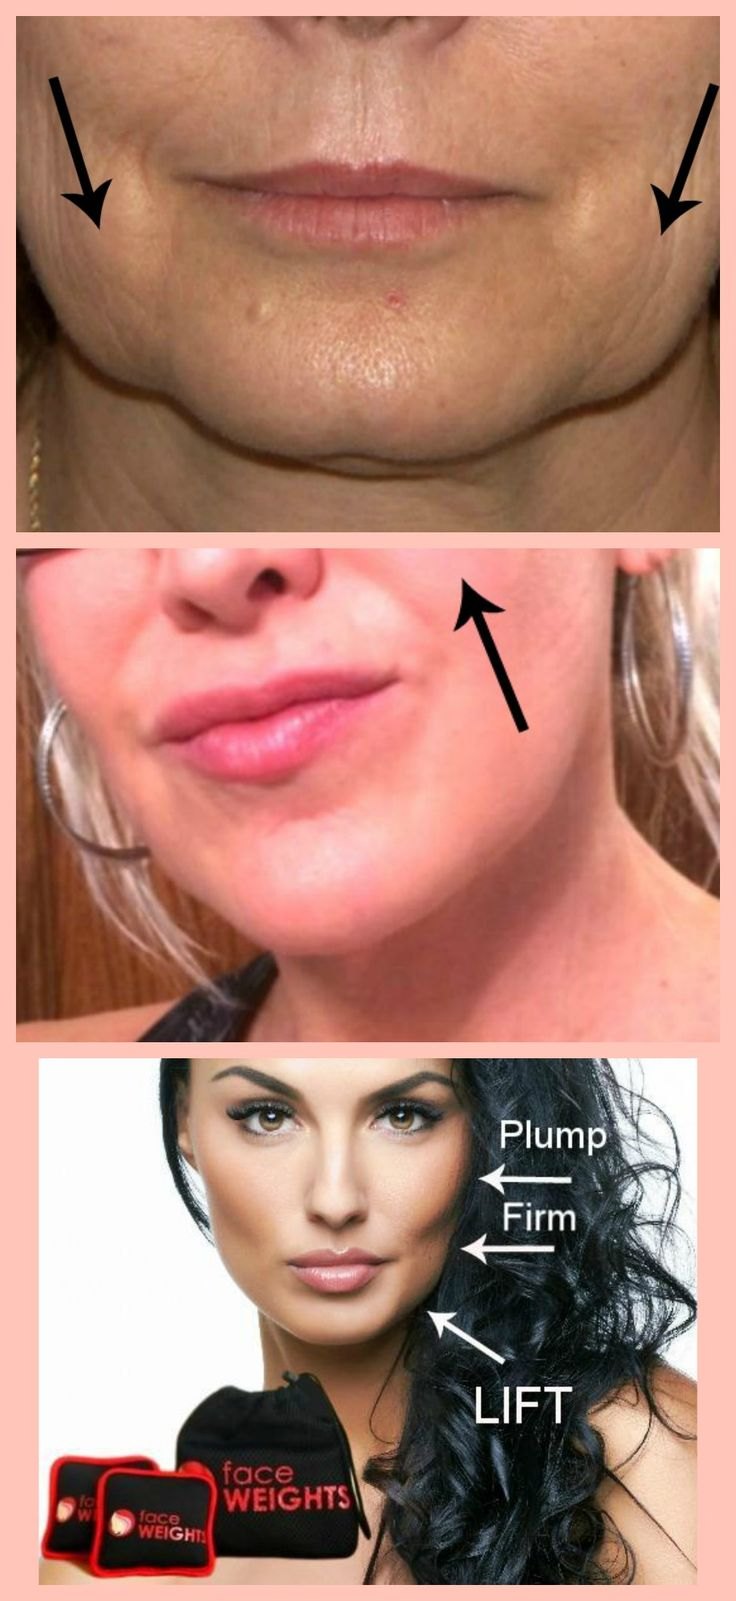 Plump, Firm, & Lift Your Face...here's how.